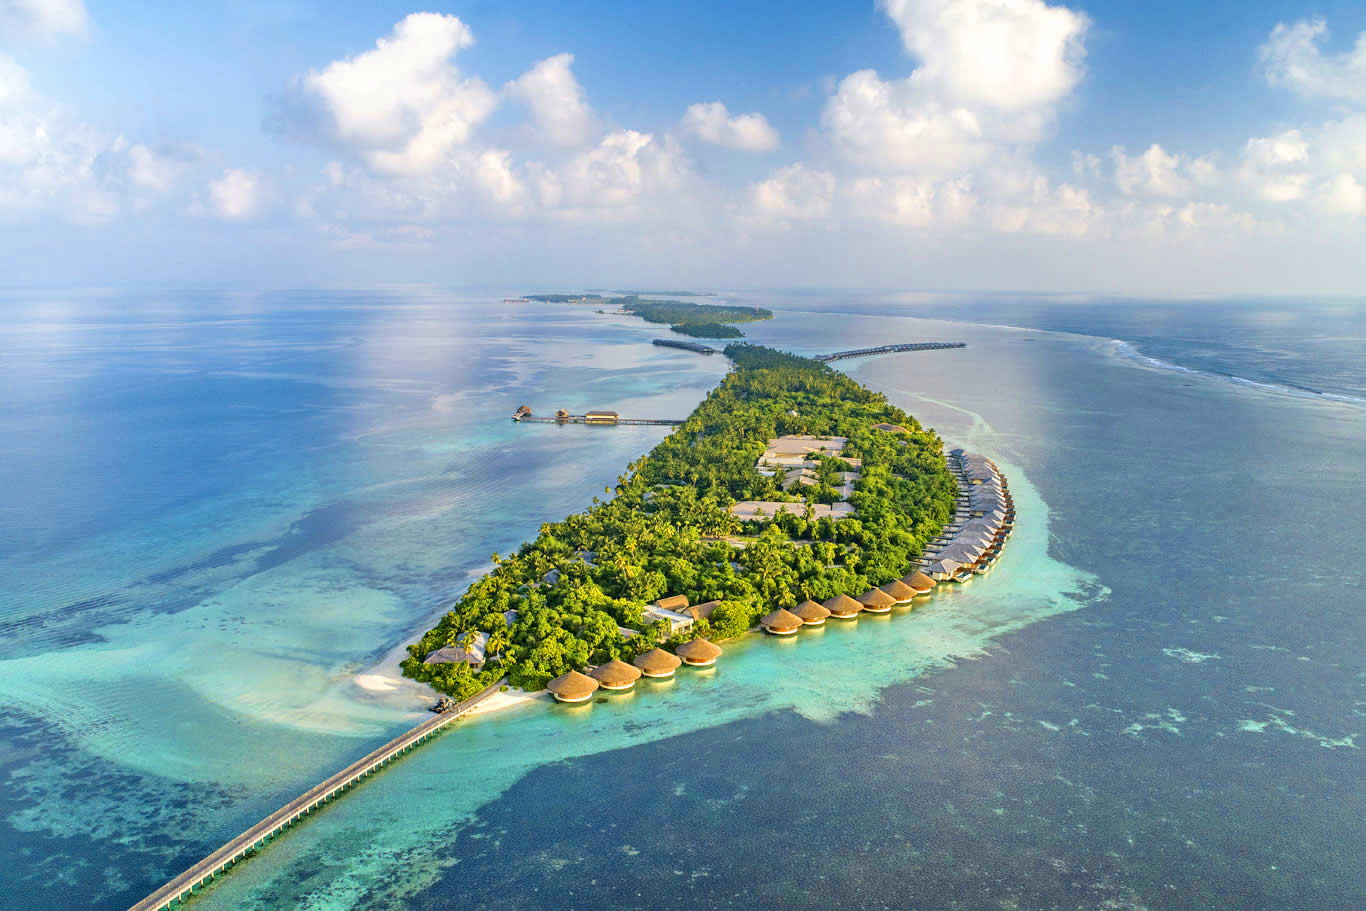 The Residence Maldives at Dhigurah: Opening in June 2019